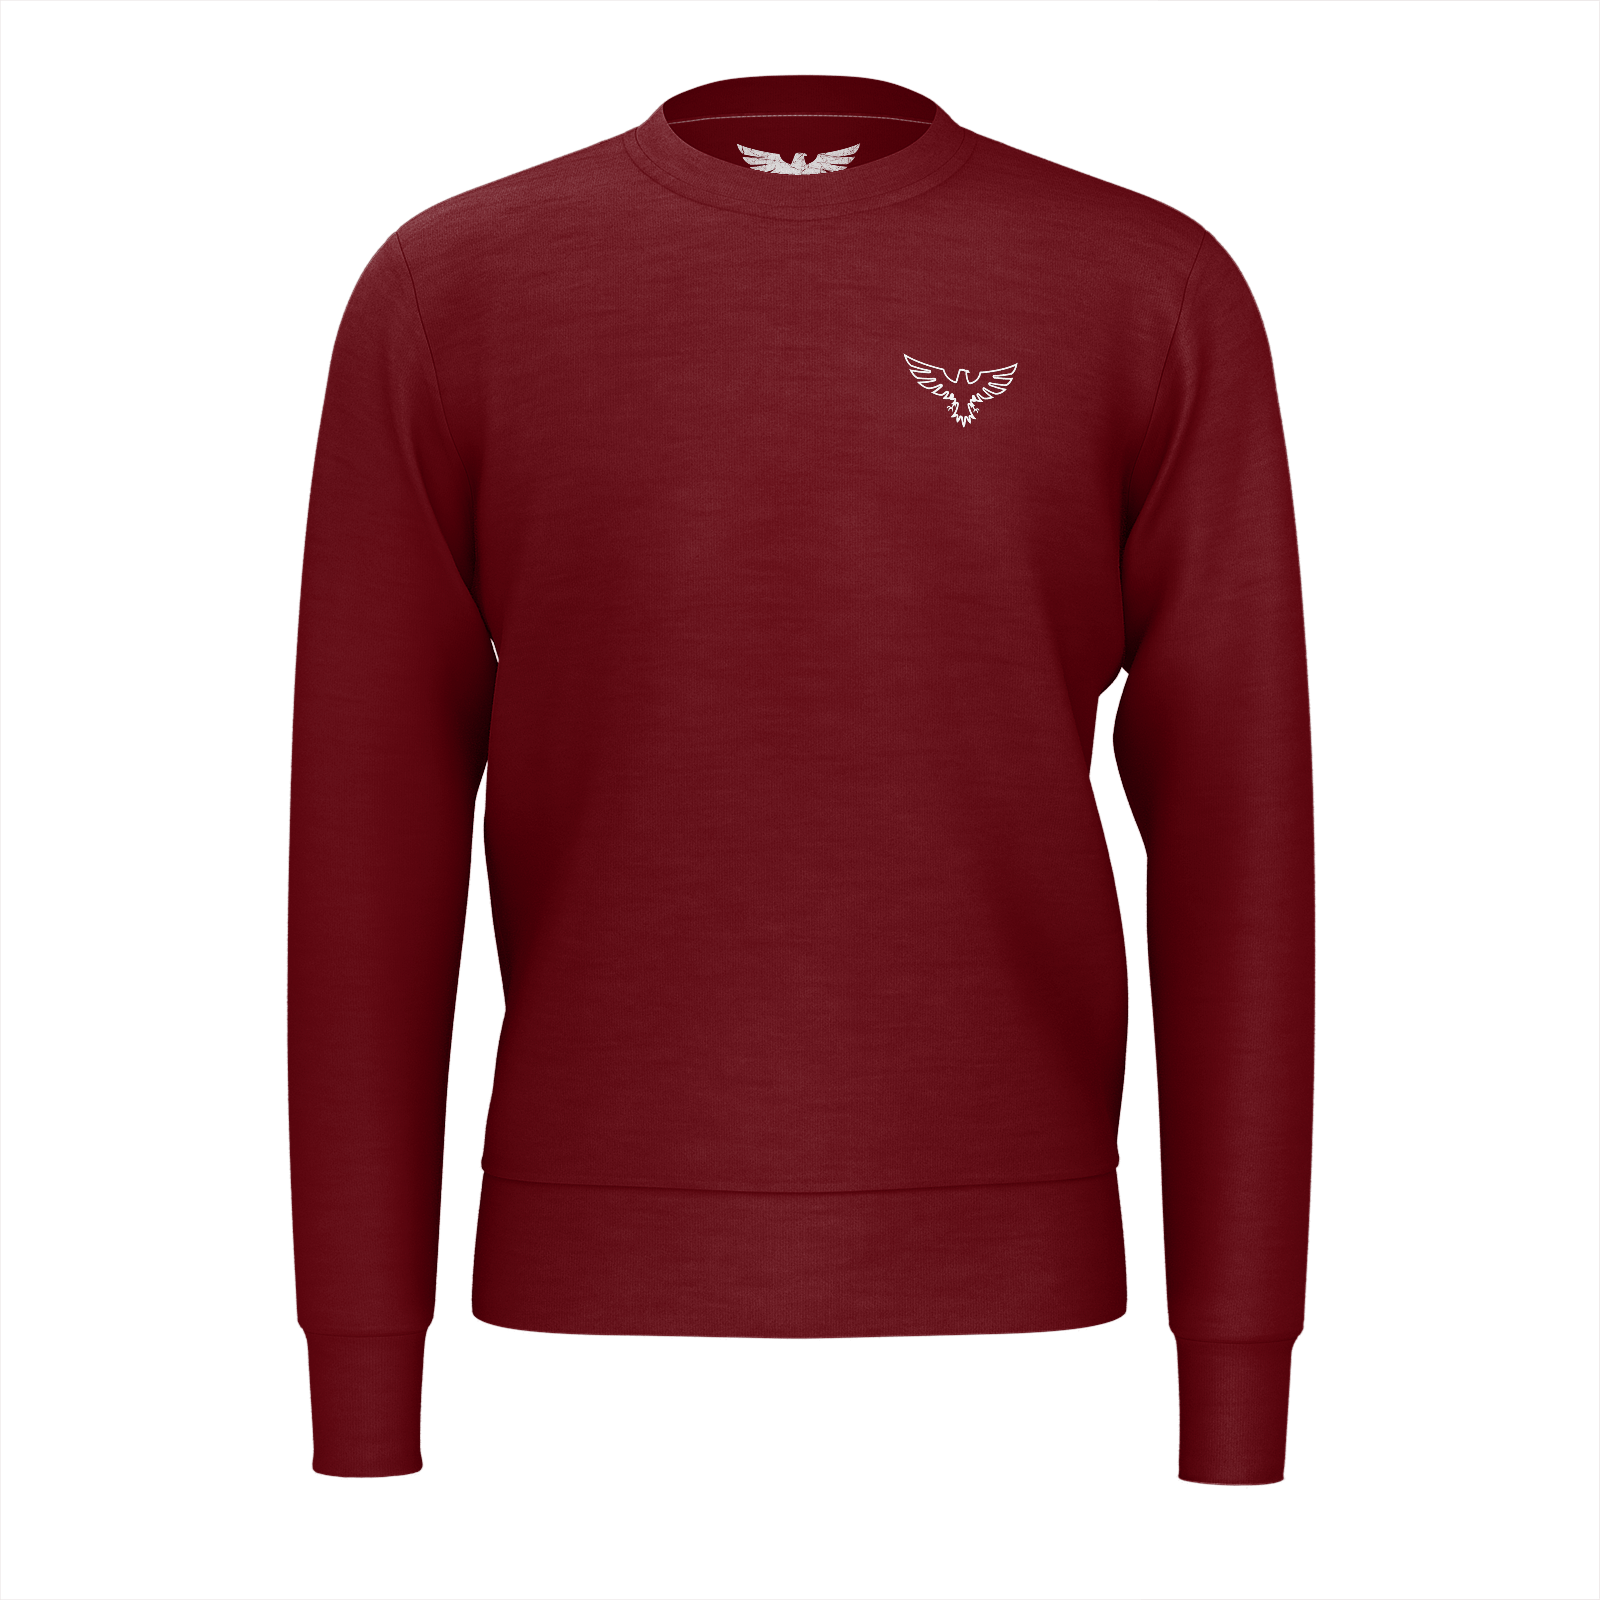 Men's Supply Co. Sustainable Solid Maroon Long Sleeve Crewneck Sweatshirt - Find Your Coast Supply Co.